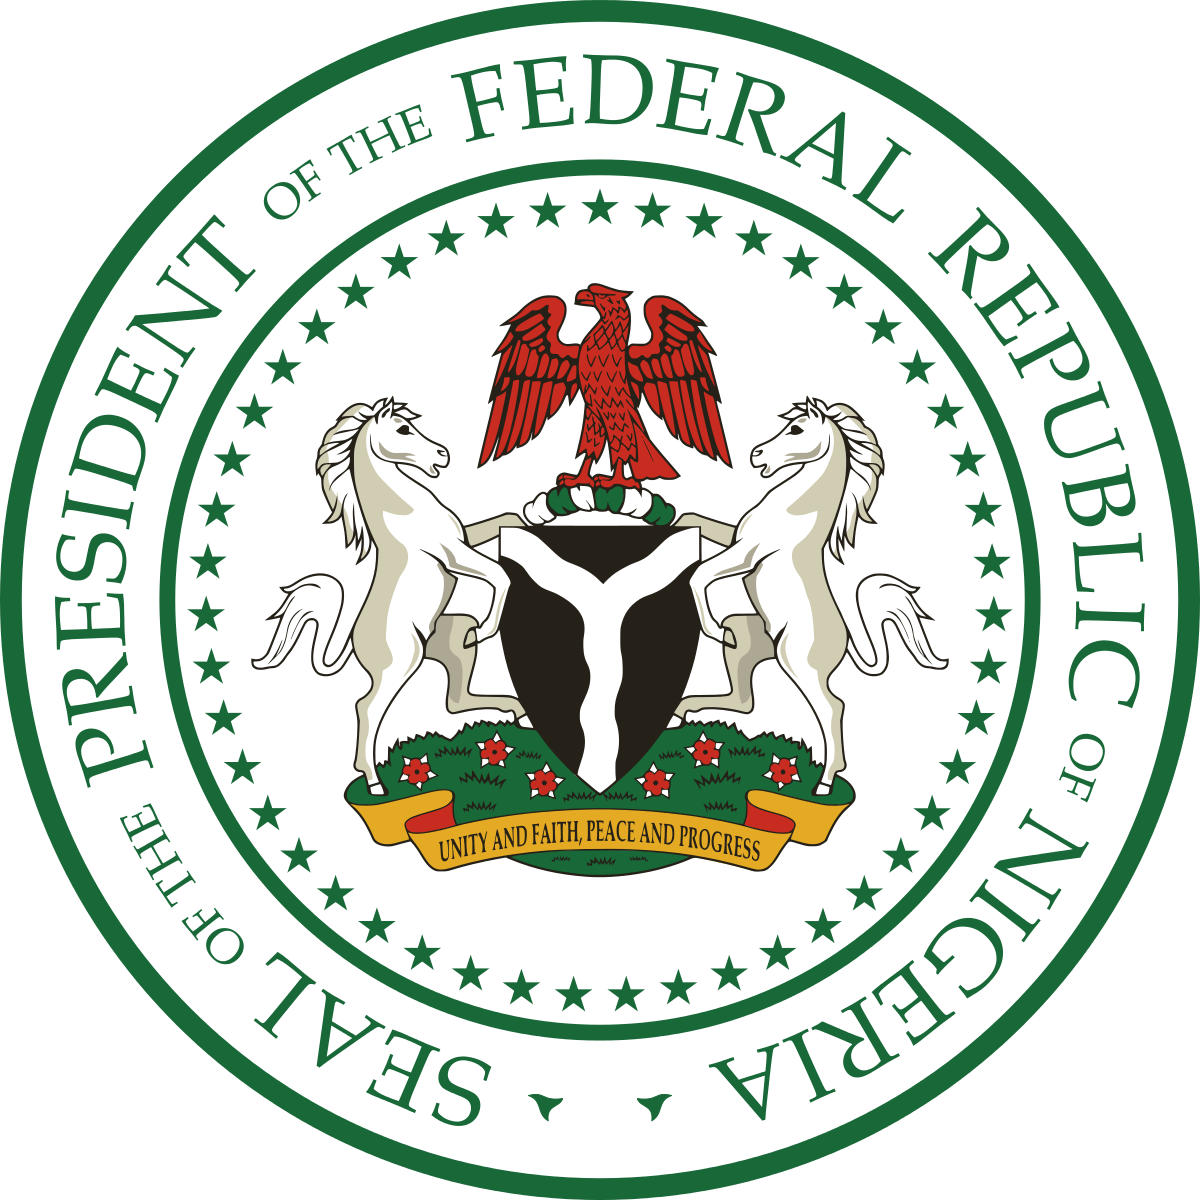 Presidency of Nigeria